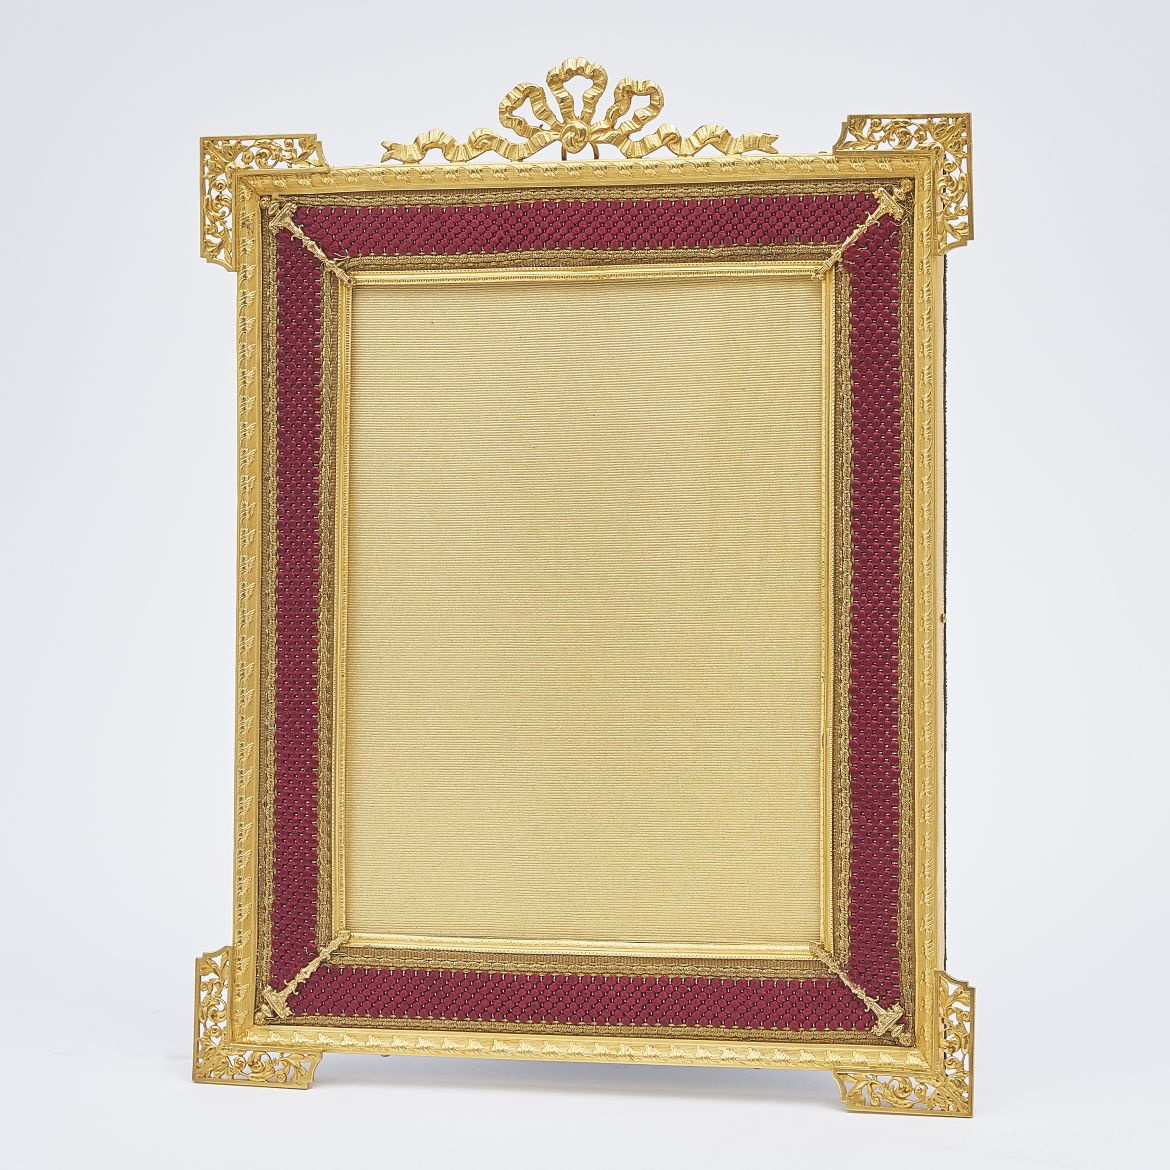 Gilt Bronze Frame With Gold Thread Border